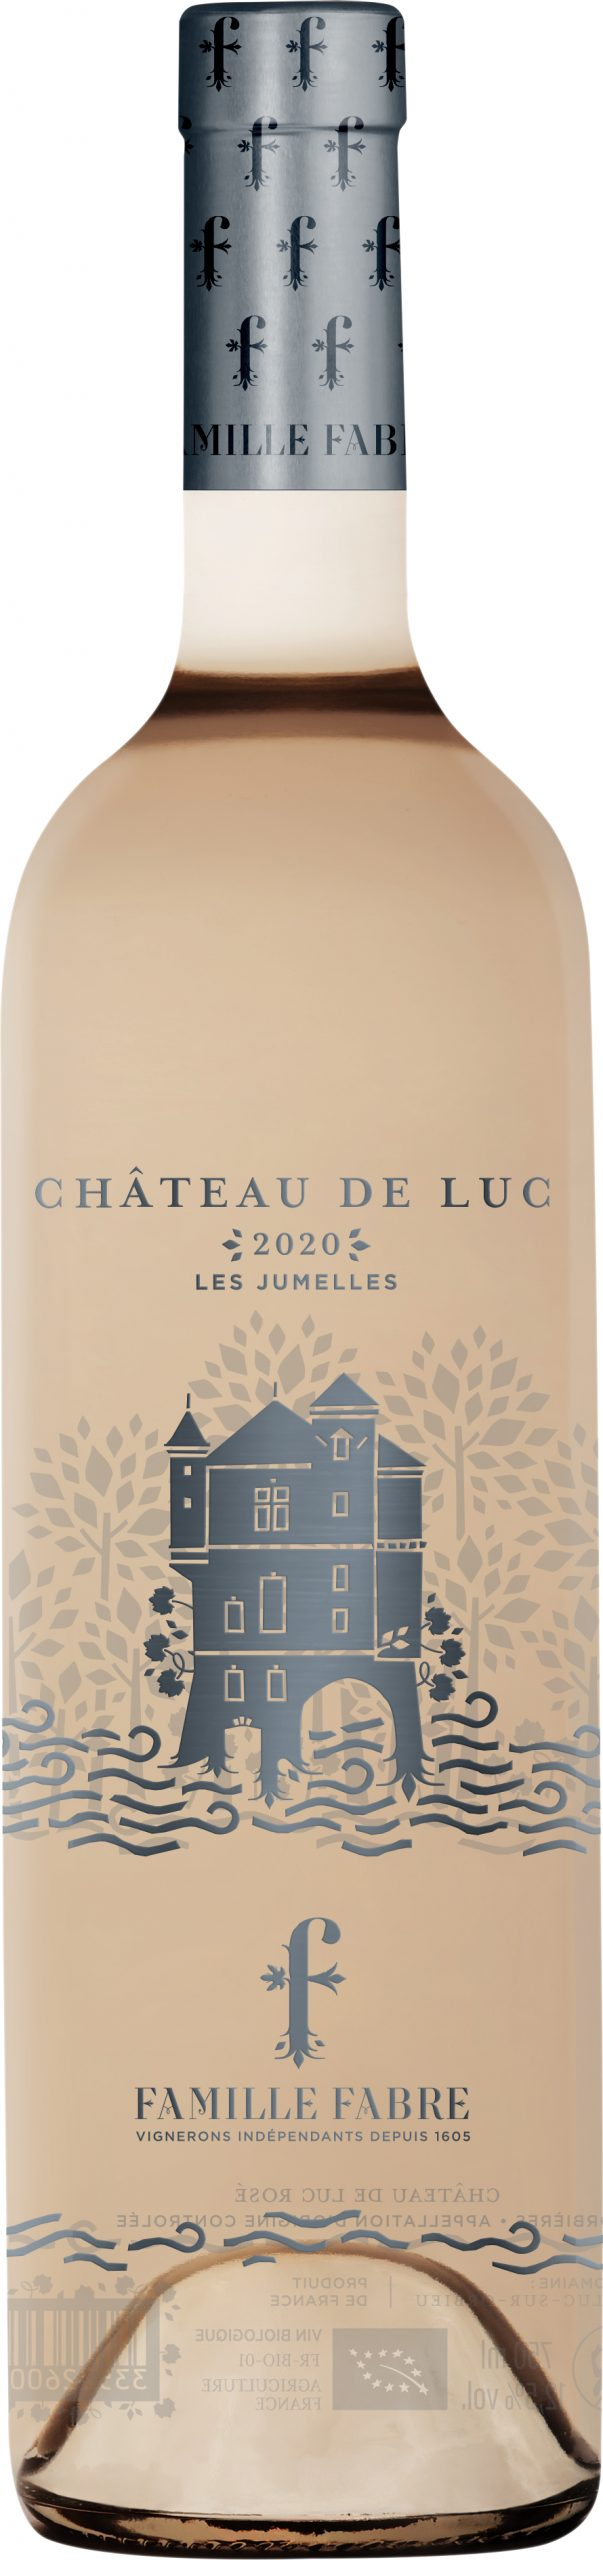 CHATEAU DE LUC ROSE